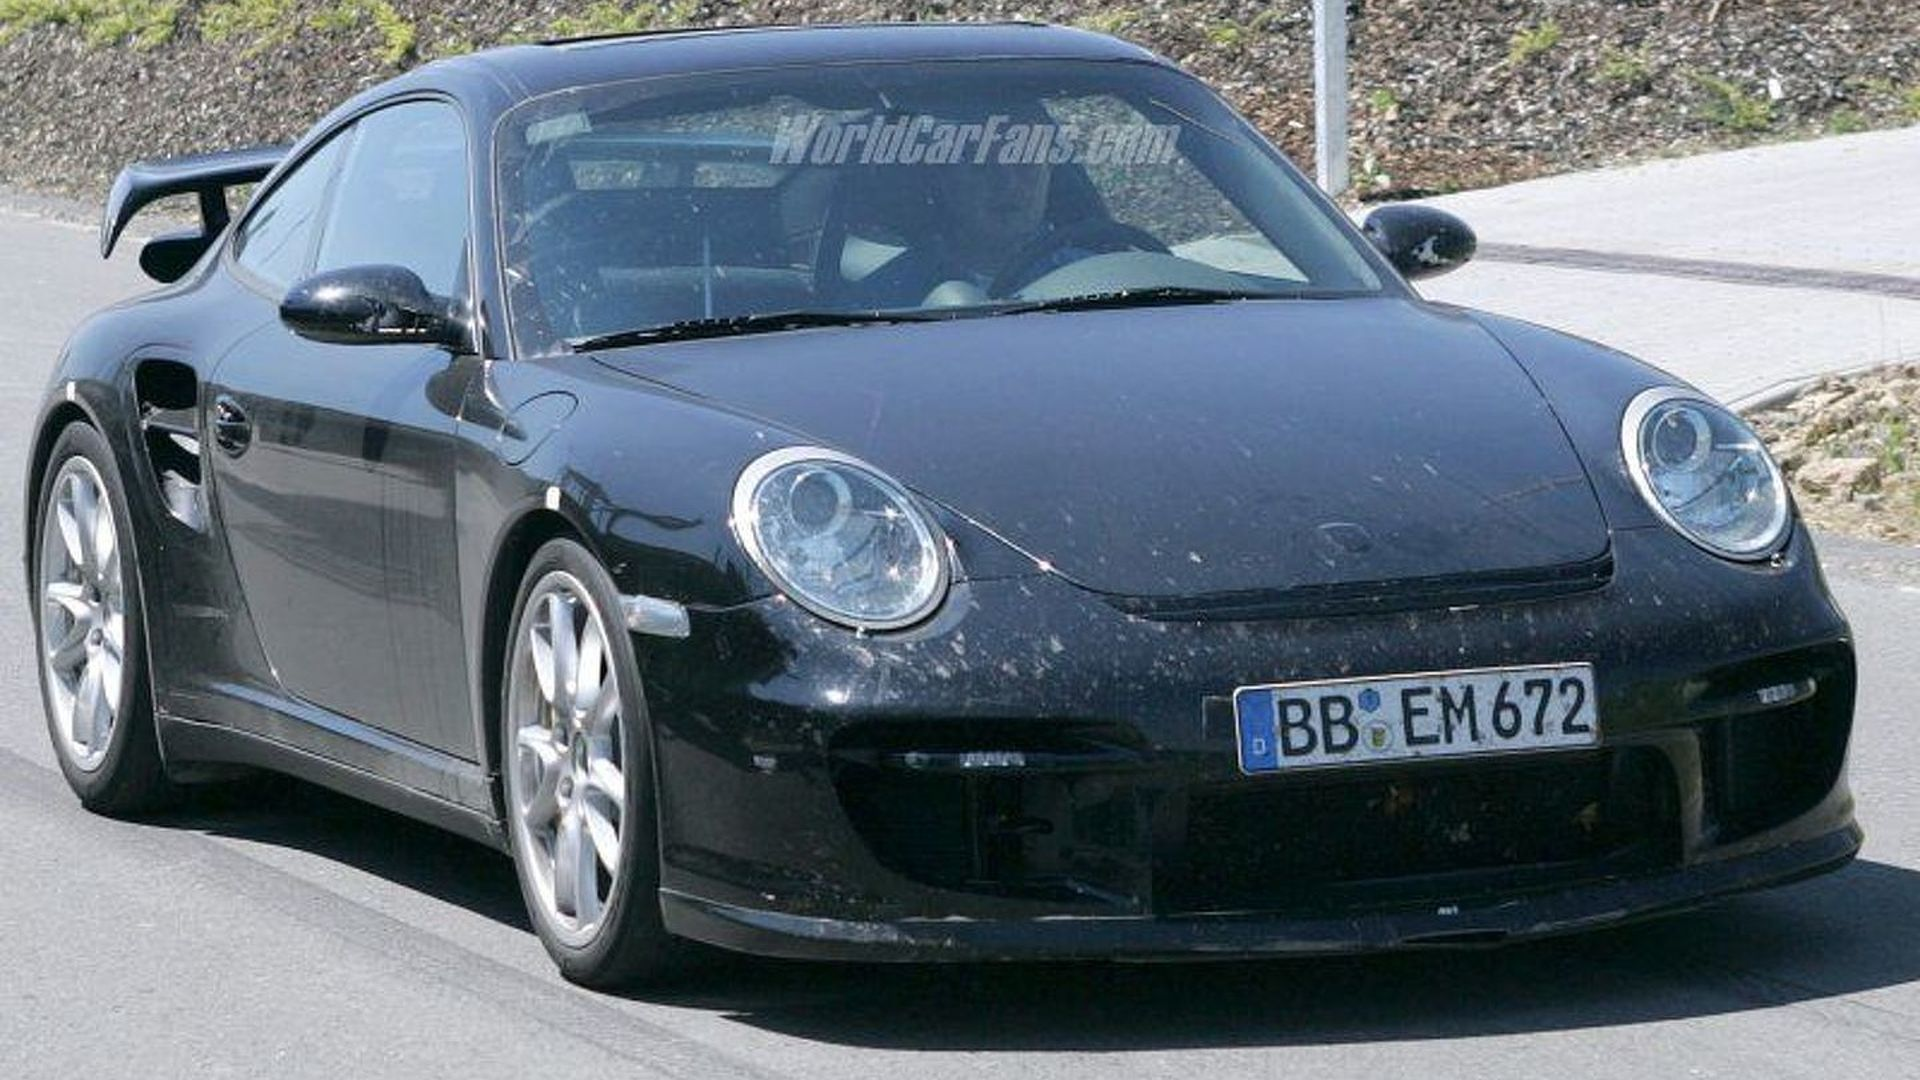 SPY PHOTOS: Porsche 997 GT2